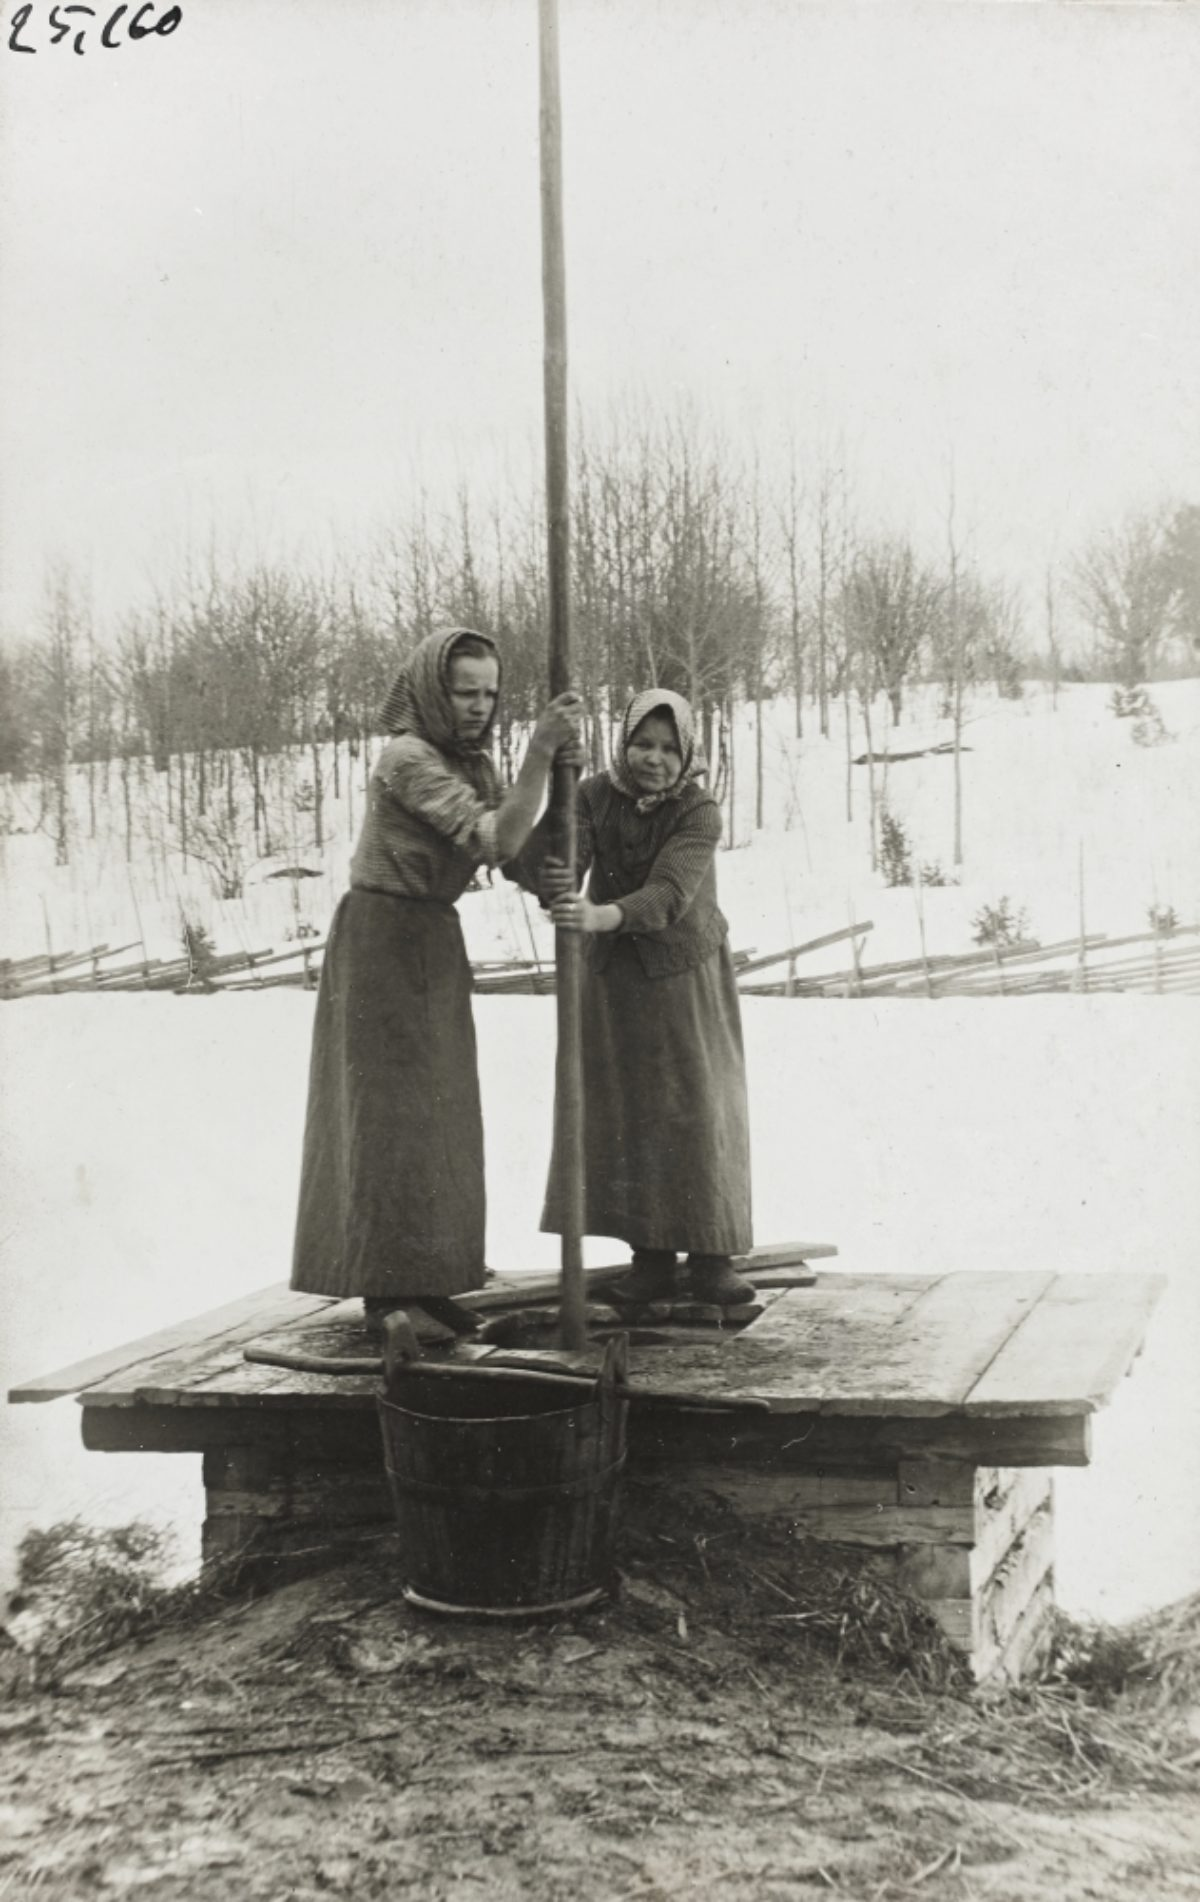 Women lifting water up from a well in Airanne village, in the rural municipality of Sortavala. Photo: Liina Cantell / Collection of the Karelian student nation at the University of Helsinki / Picture Collections of the Finnish Heritage Agency